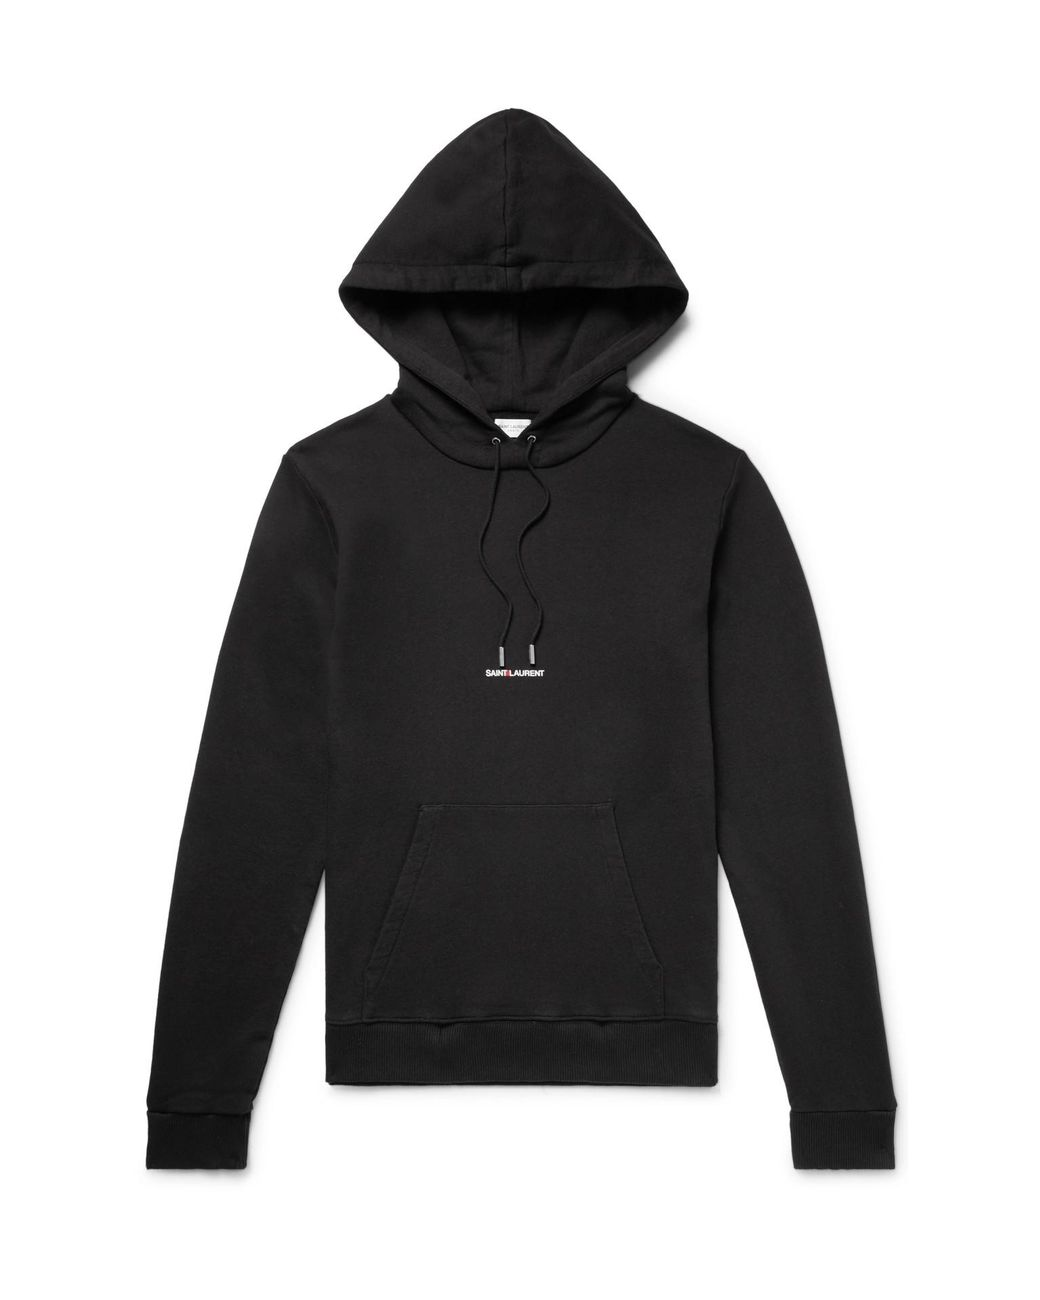 44dd92419a6 Saint Laurent Logo-print Loopback Cotton-jersey Hoodie in Black for ...